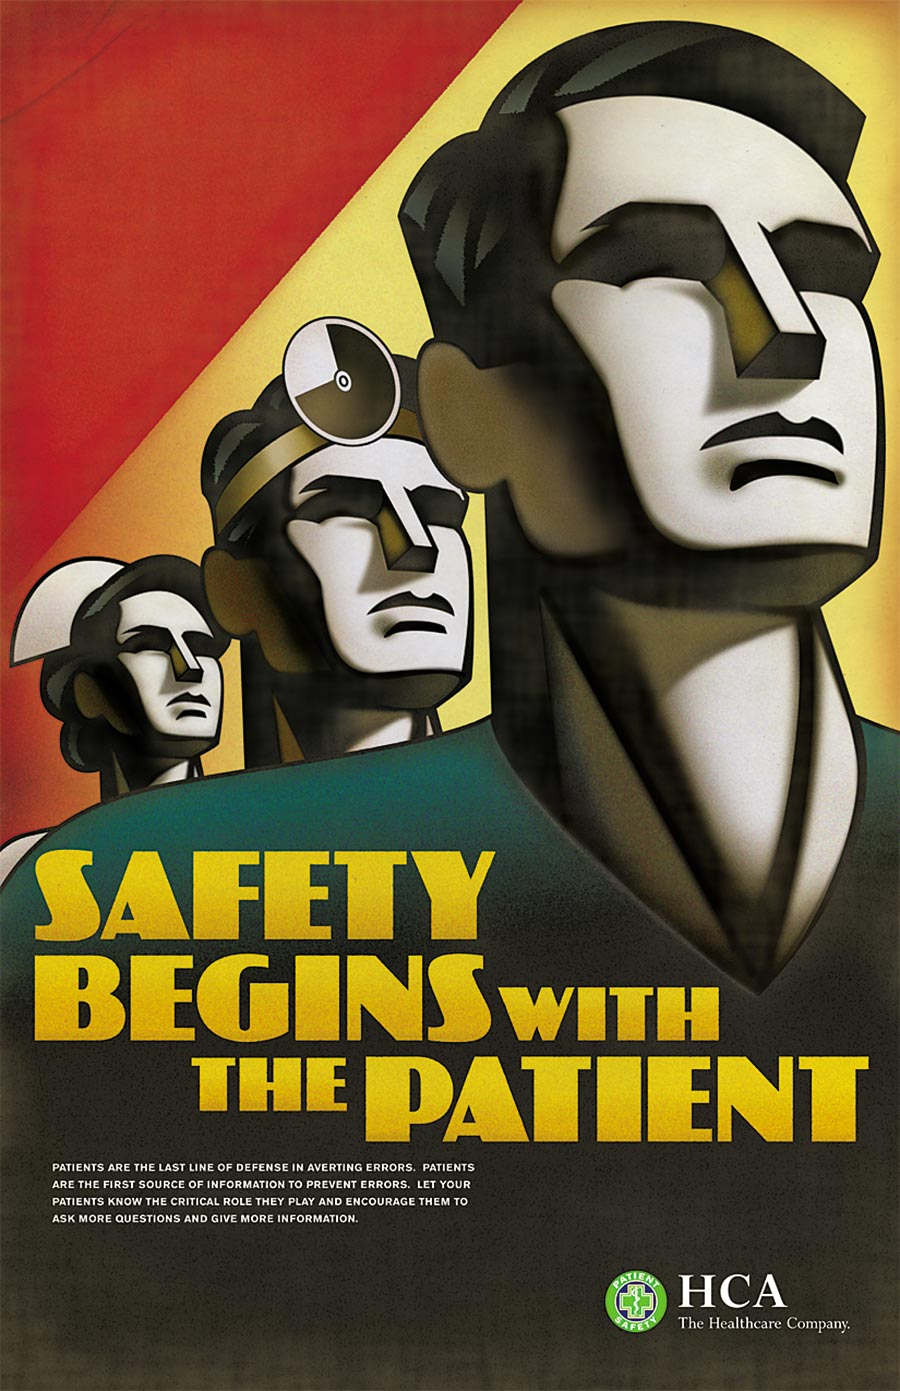 HCA Patient Safety Poster